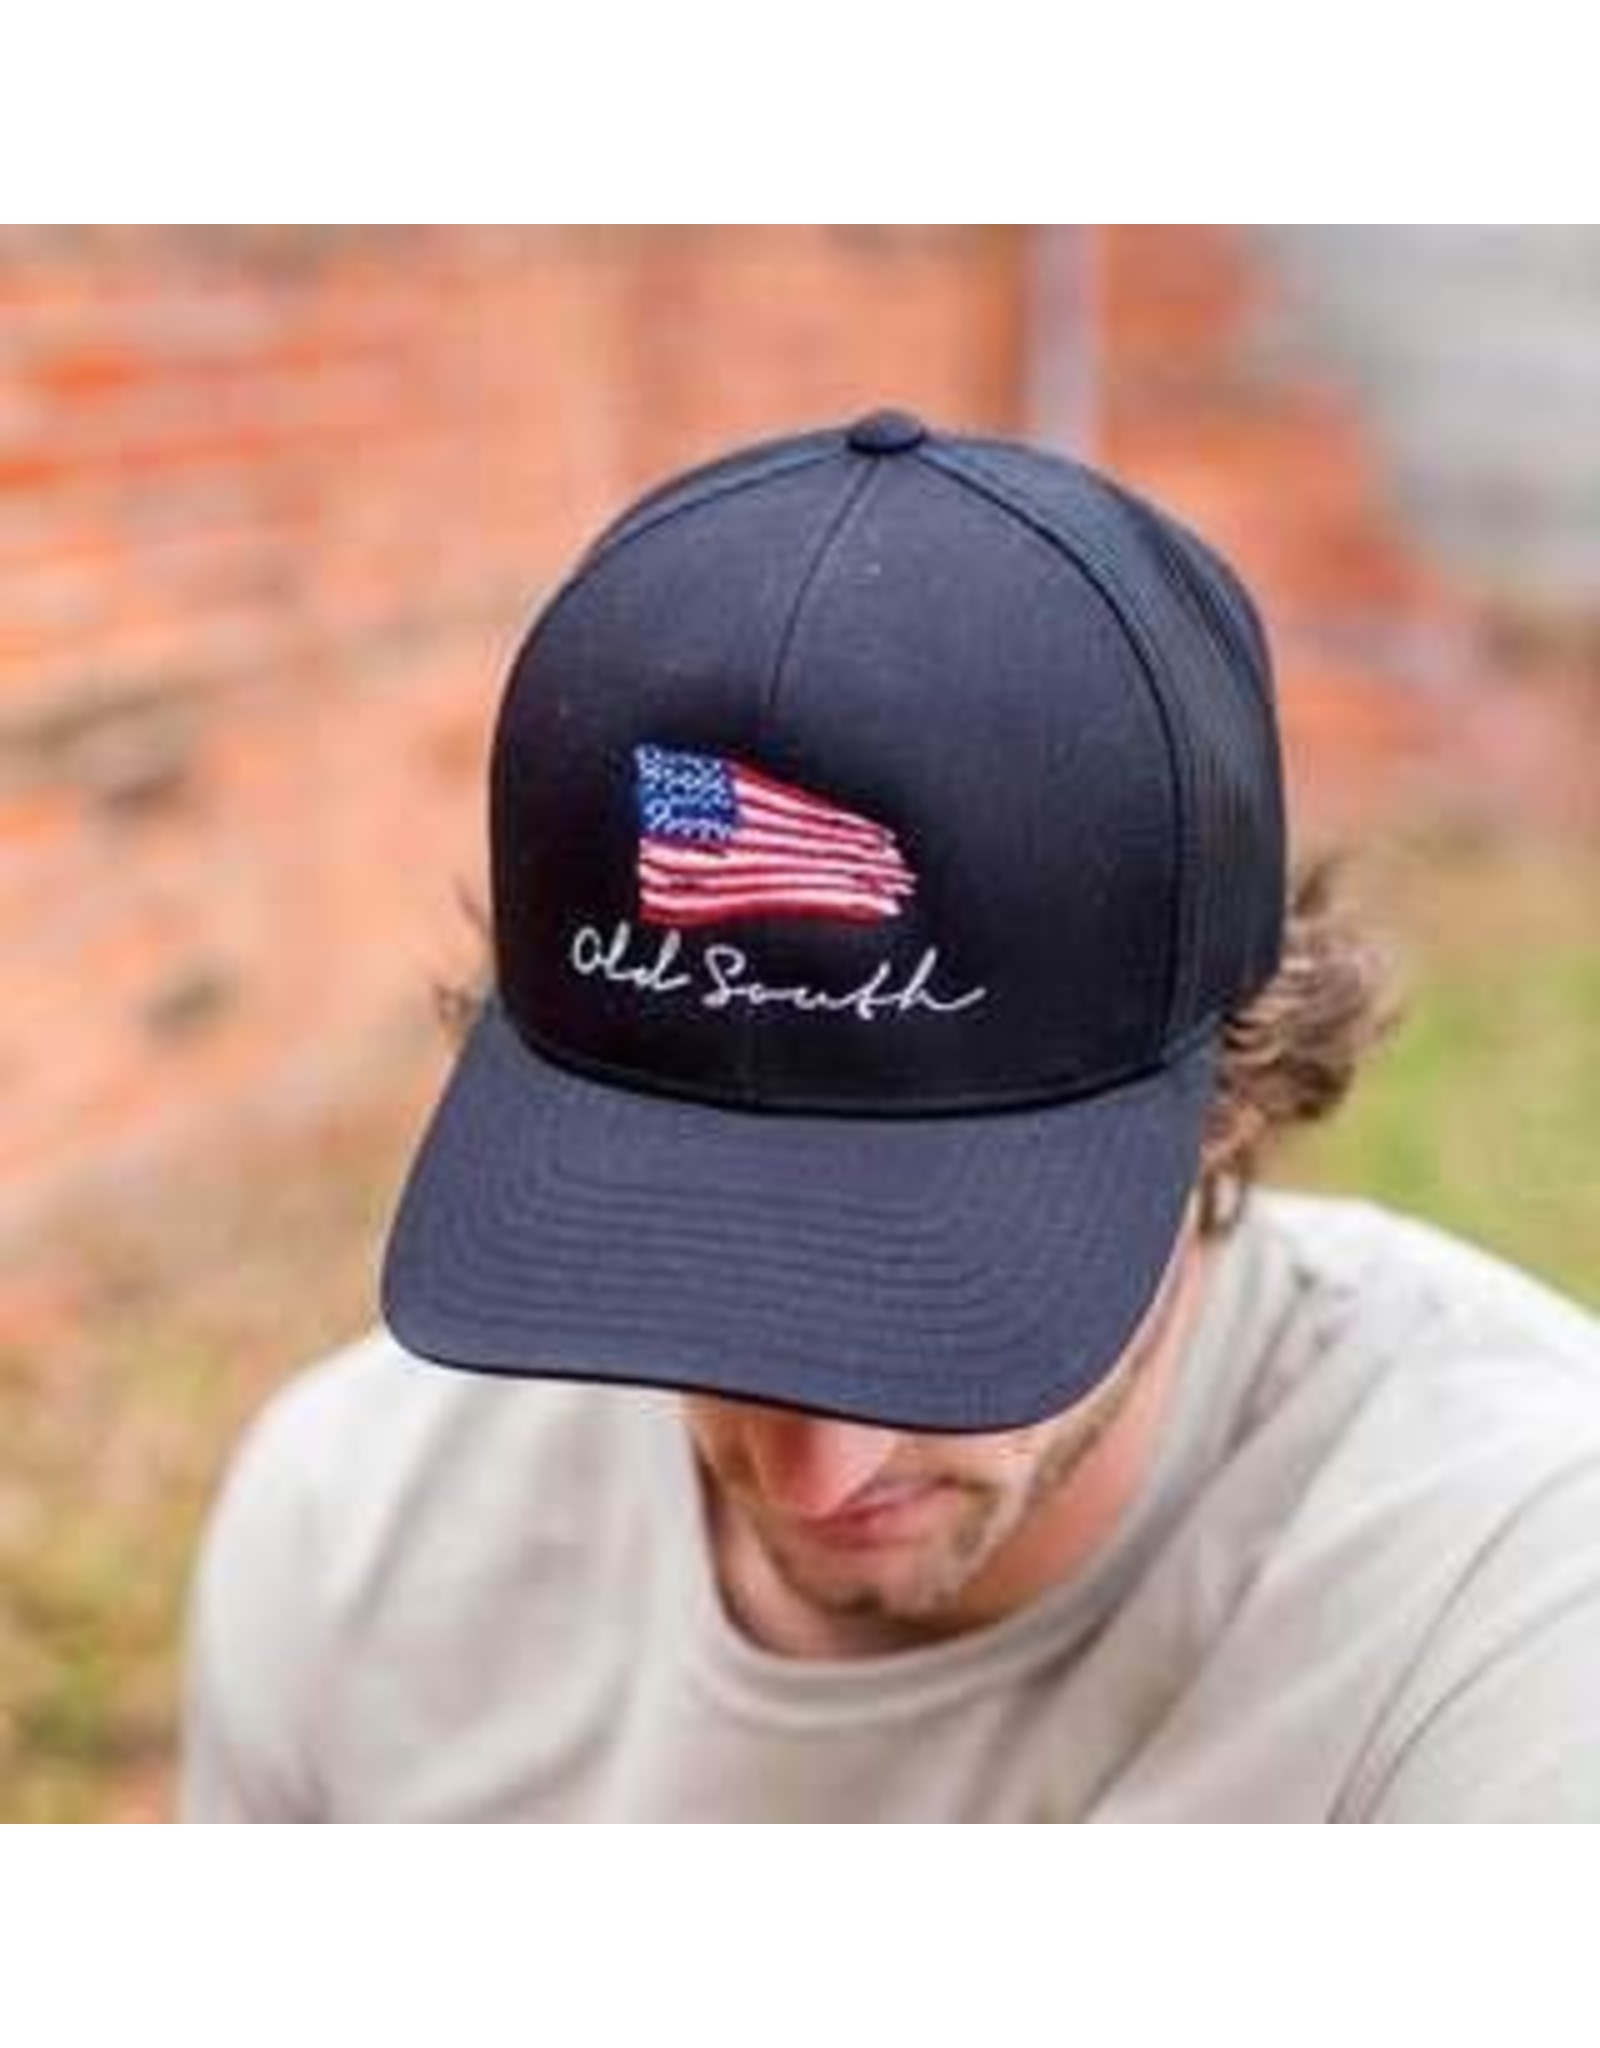 Hats OLD SOUTH NS-AME<br /> American Flag